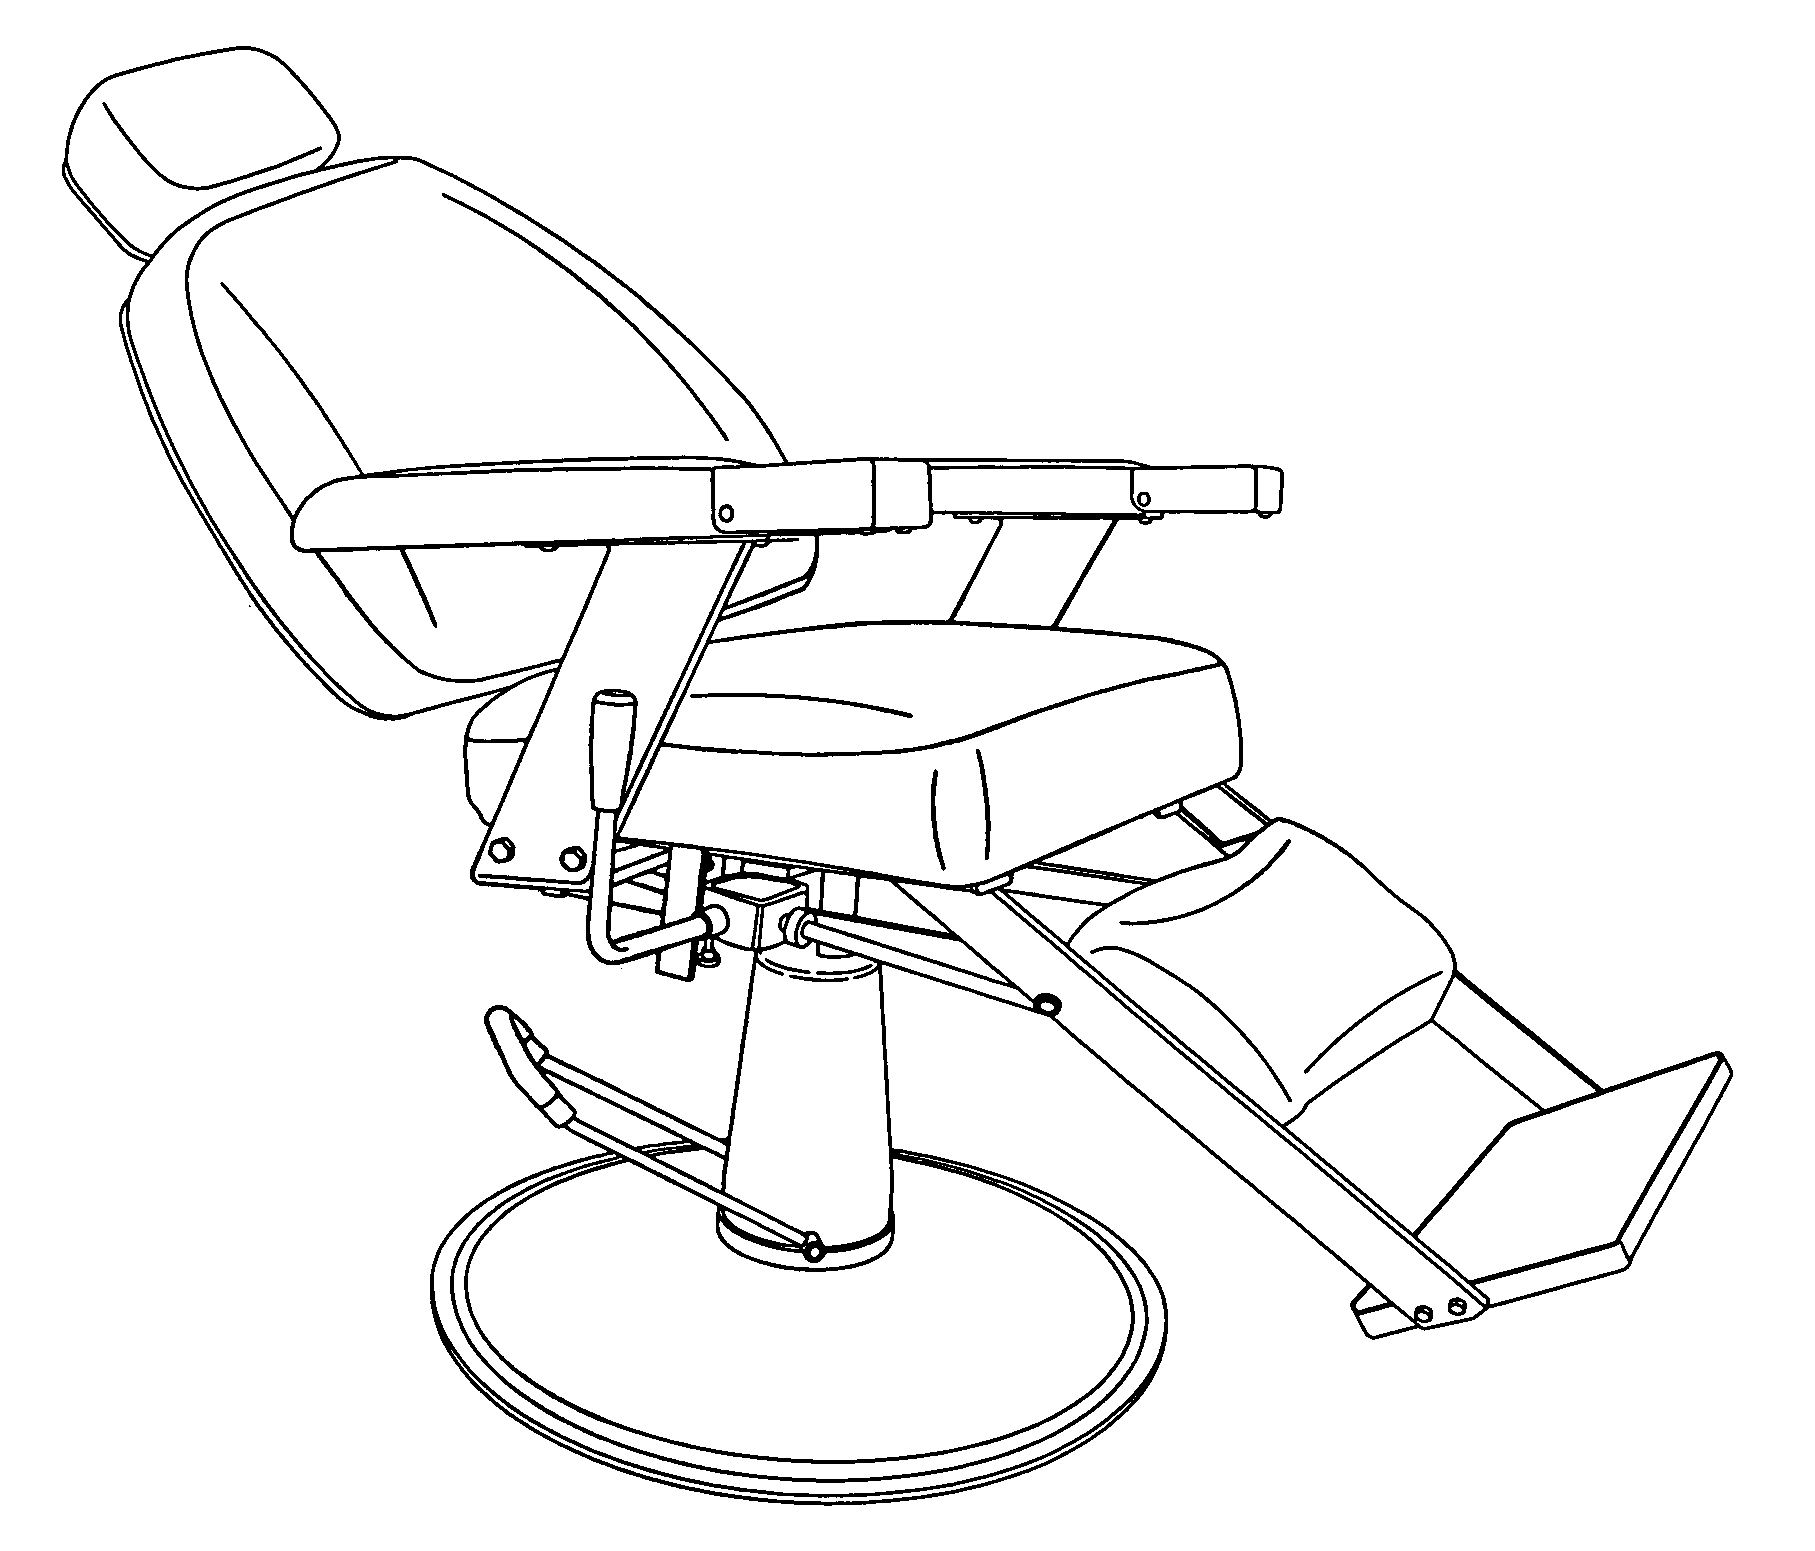 Barber chairs drawing - Patent Drawingbarber Chair Drawing